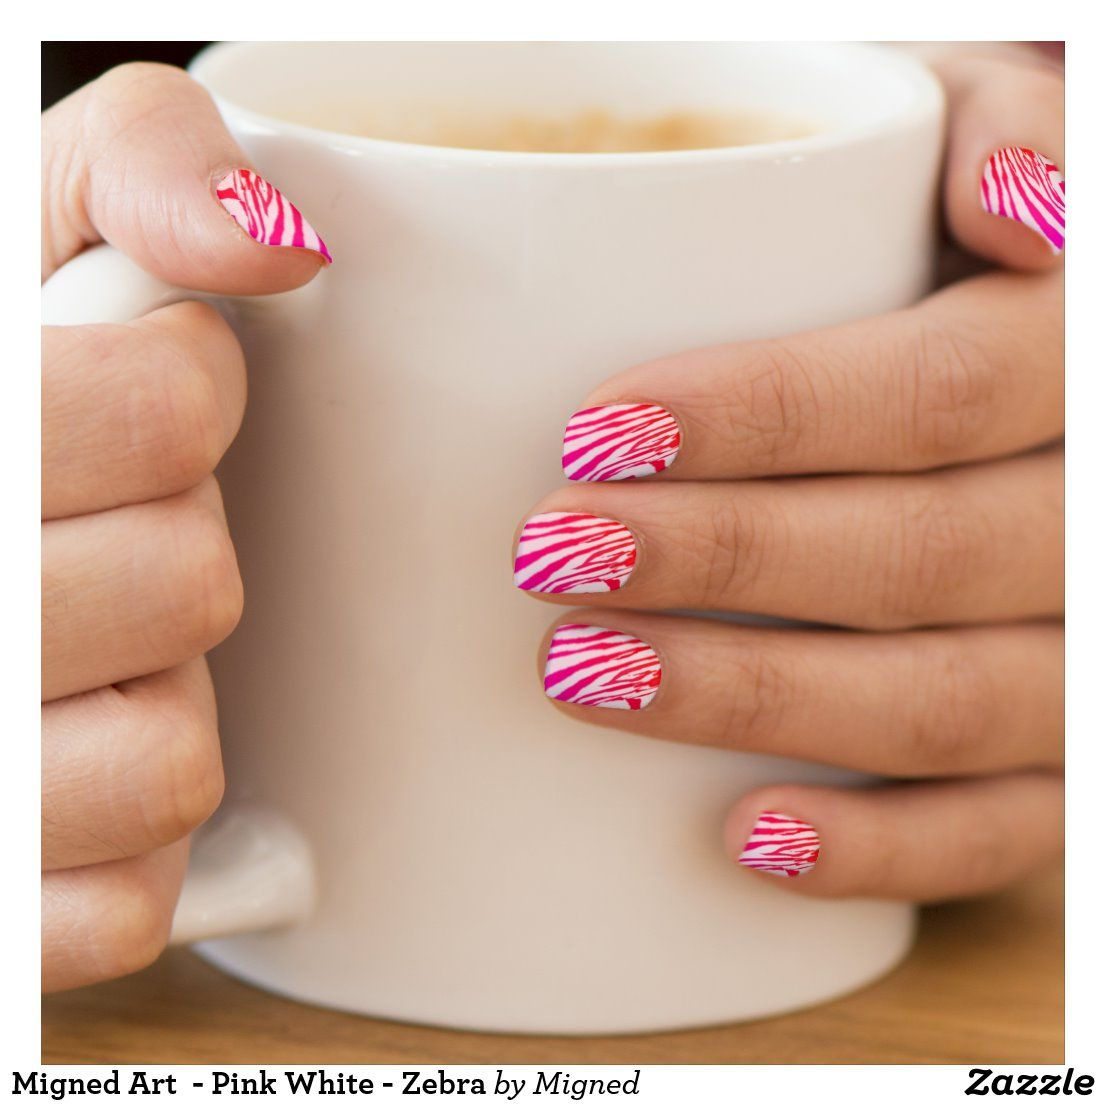 Migned Art  - Pink White - Zebra Minx Nail Art | Zazzle.com